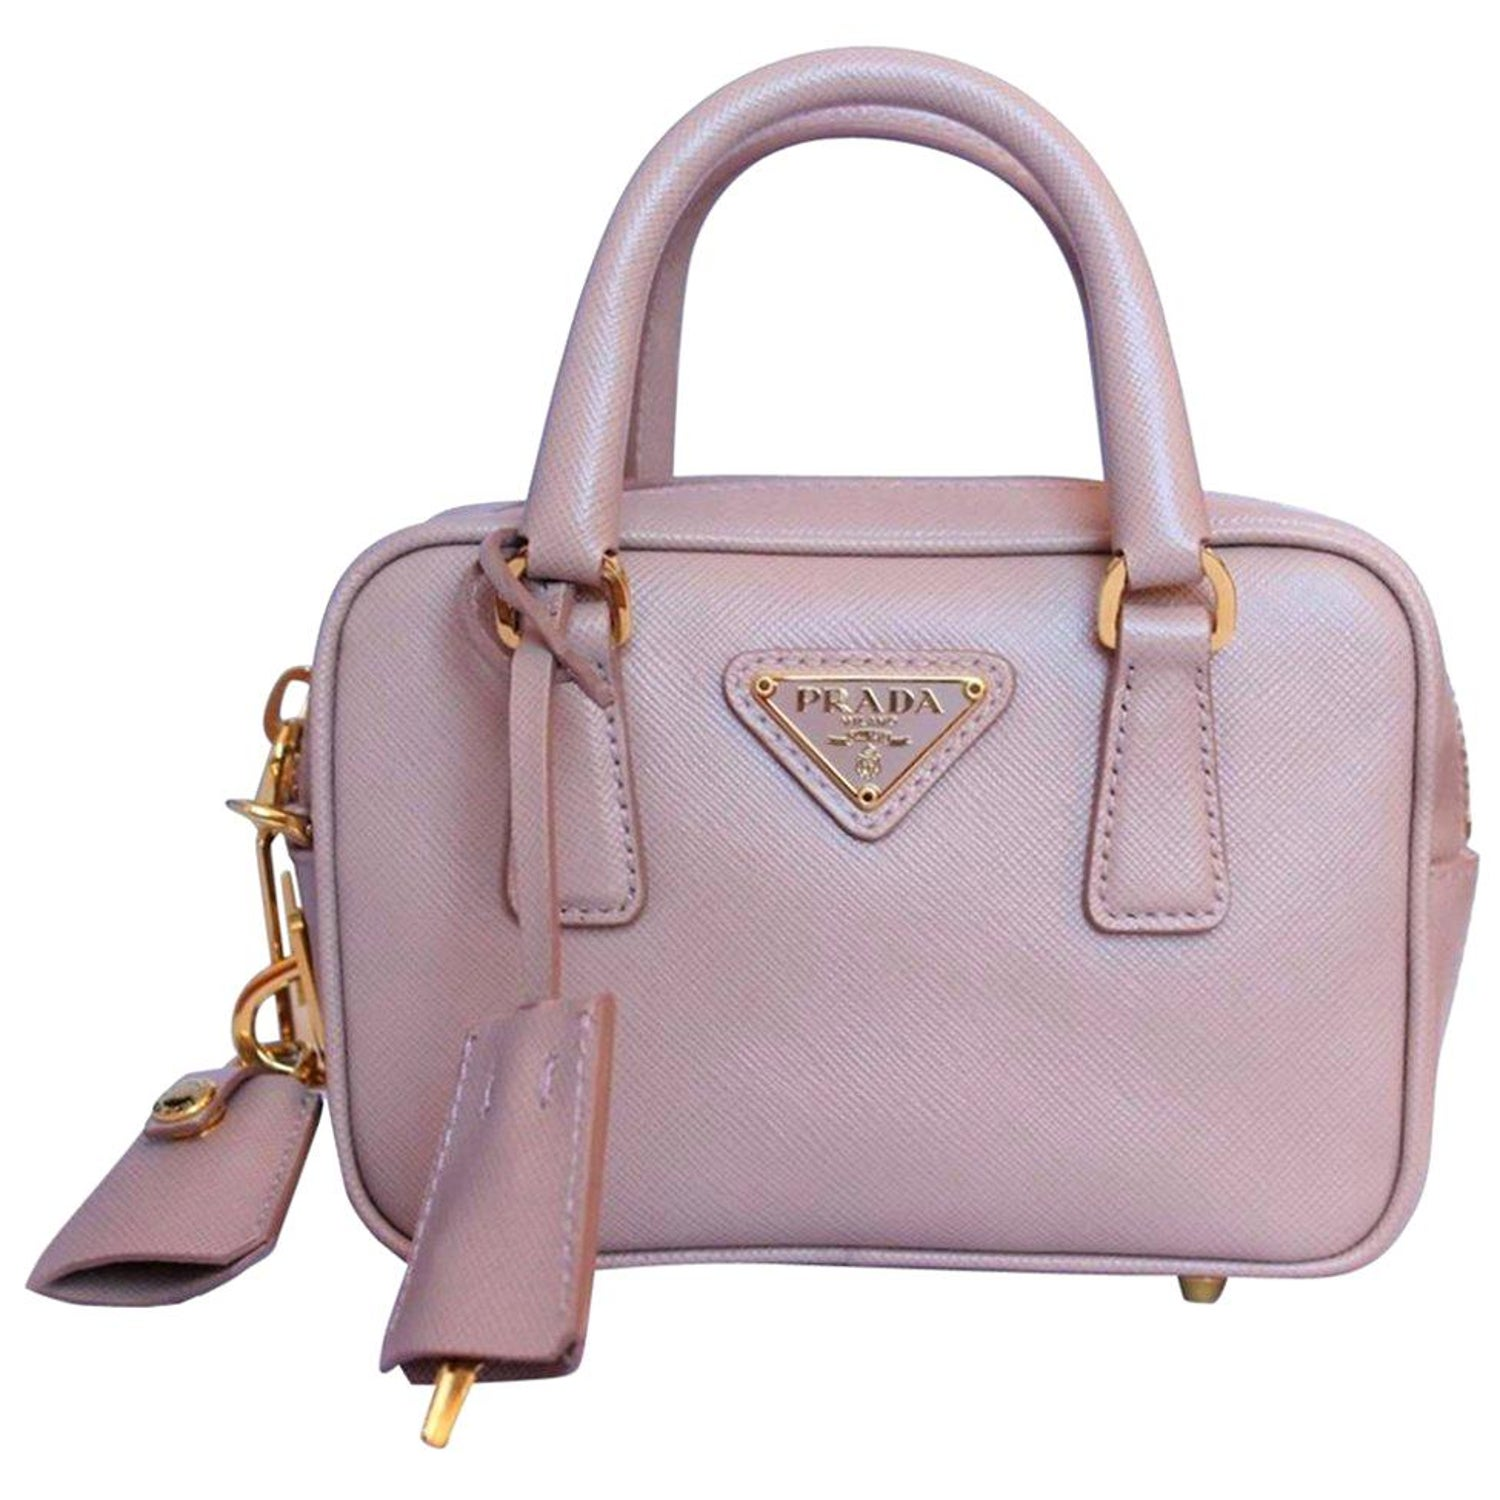 bb42a63c91ef Prada Saffiano Lux Miniature Bag at 1stdibs